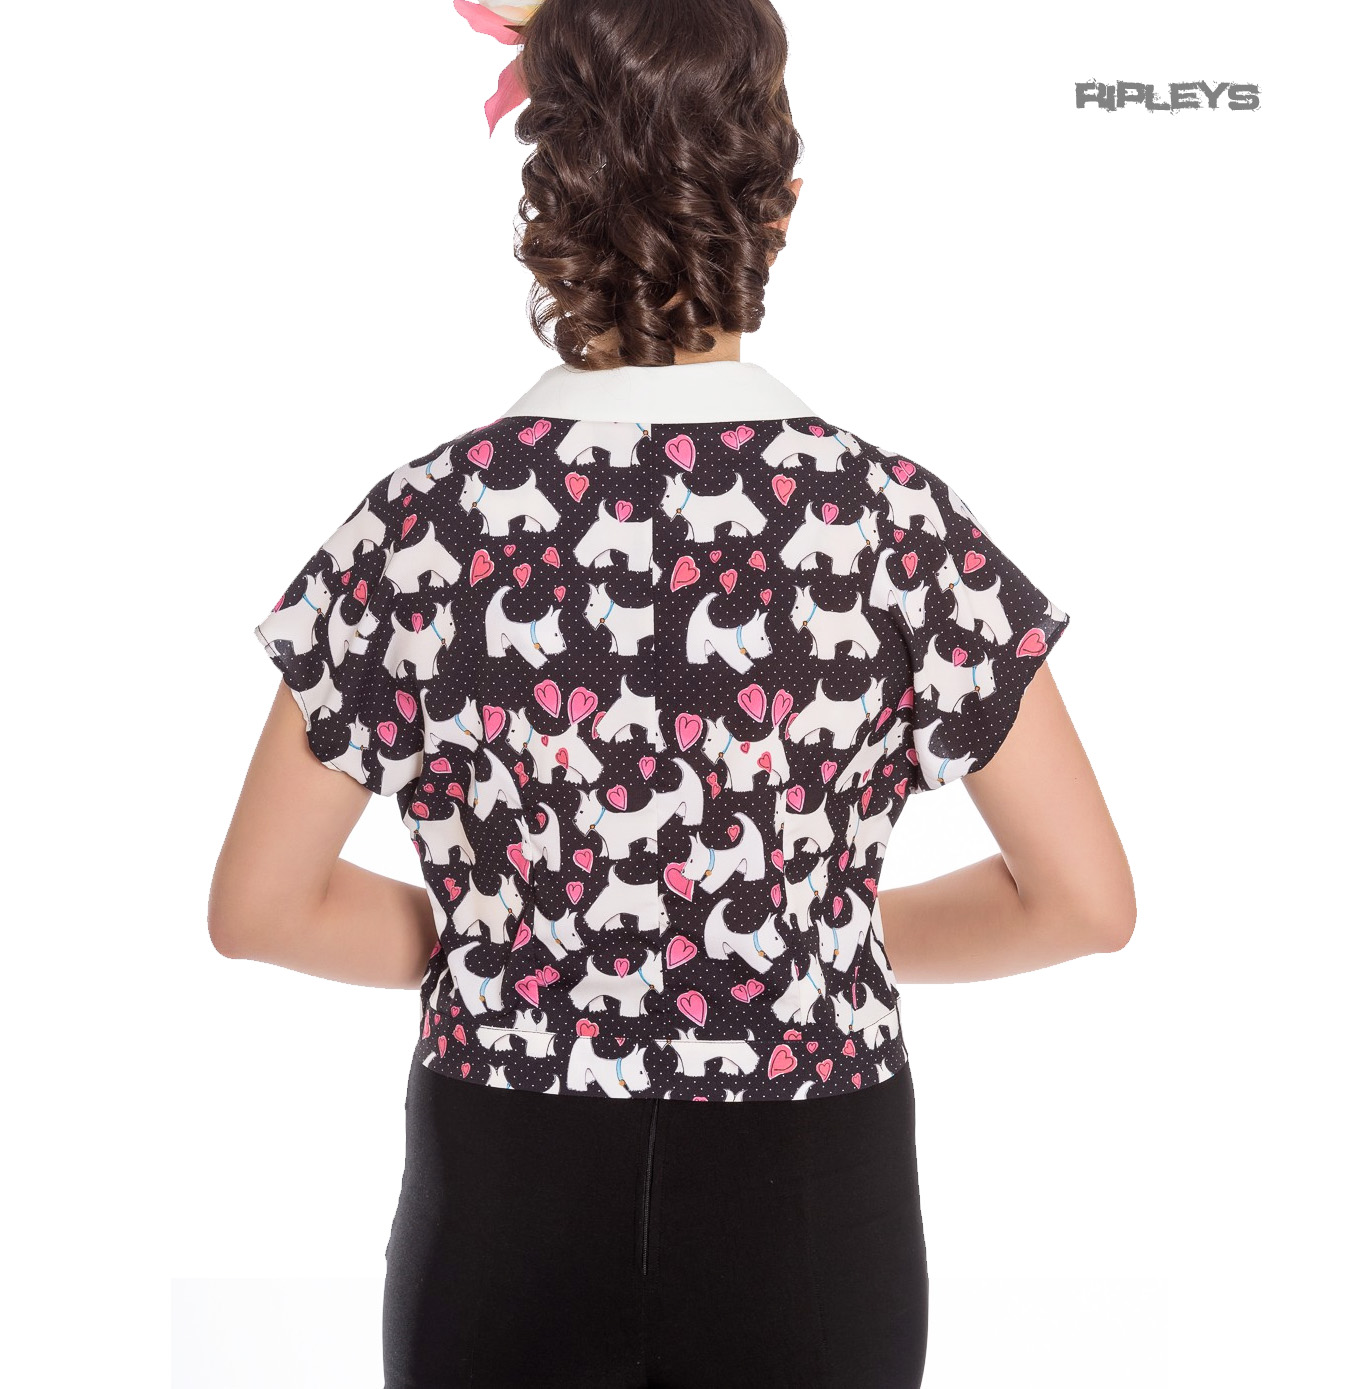 Hell-Bunny-50s-Retro-Top-Scottie-Dog-Heart-AGGY-Cropped-Blouse-Shirt-All-Sizes thumbnail 32